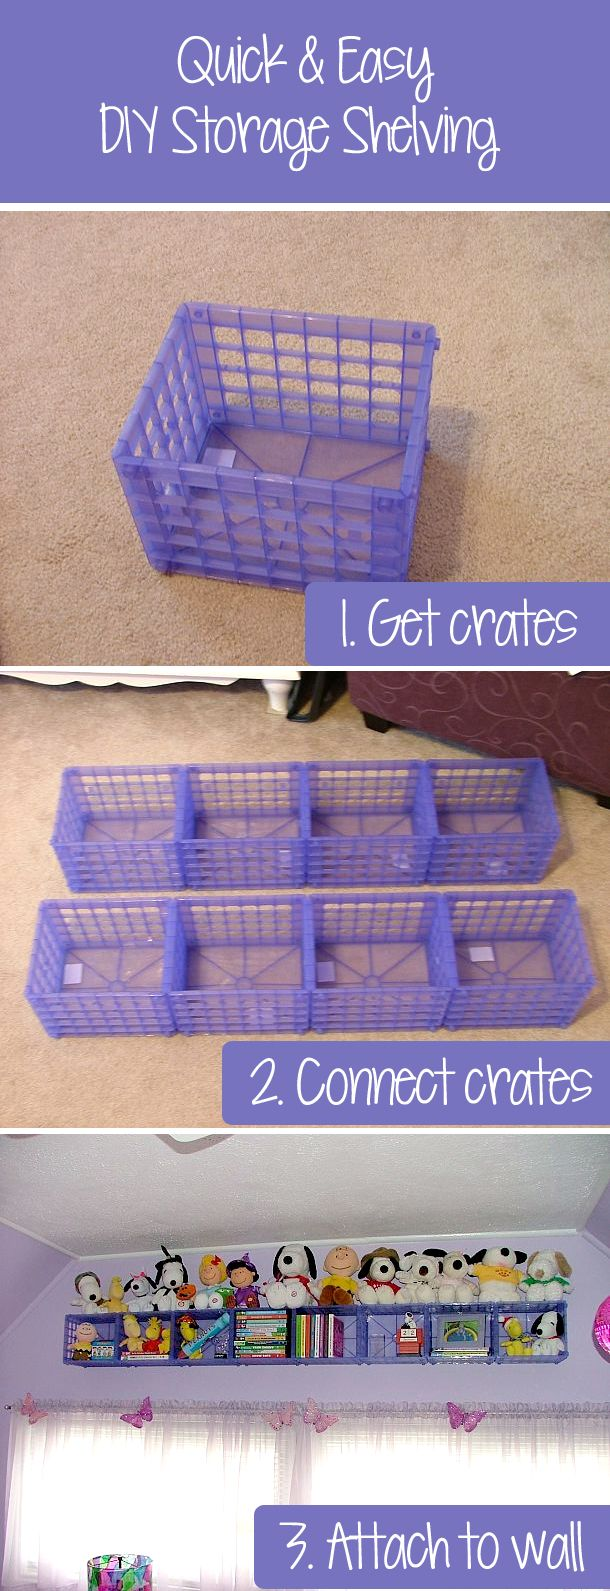 A cheap, easy, #DIY solution for extra storage and shelf space in the kids' bedroom or playroom. And these low-cost plastic crates cost only 2 bucks each!